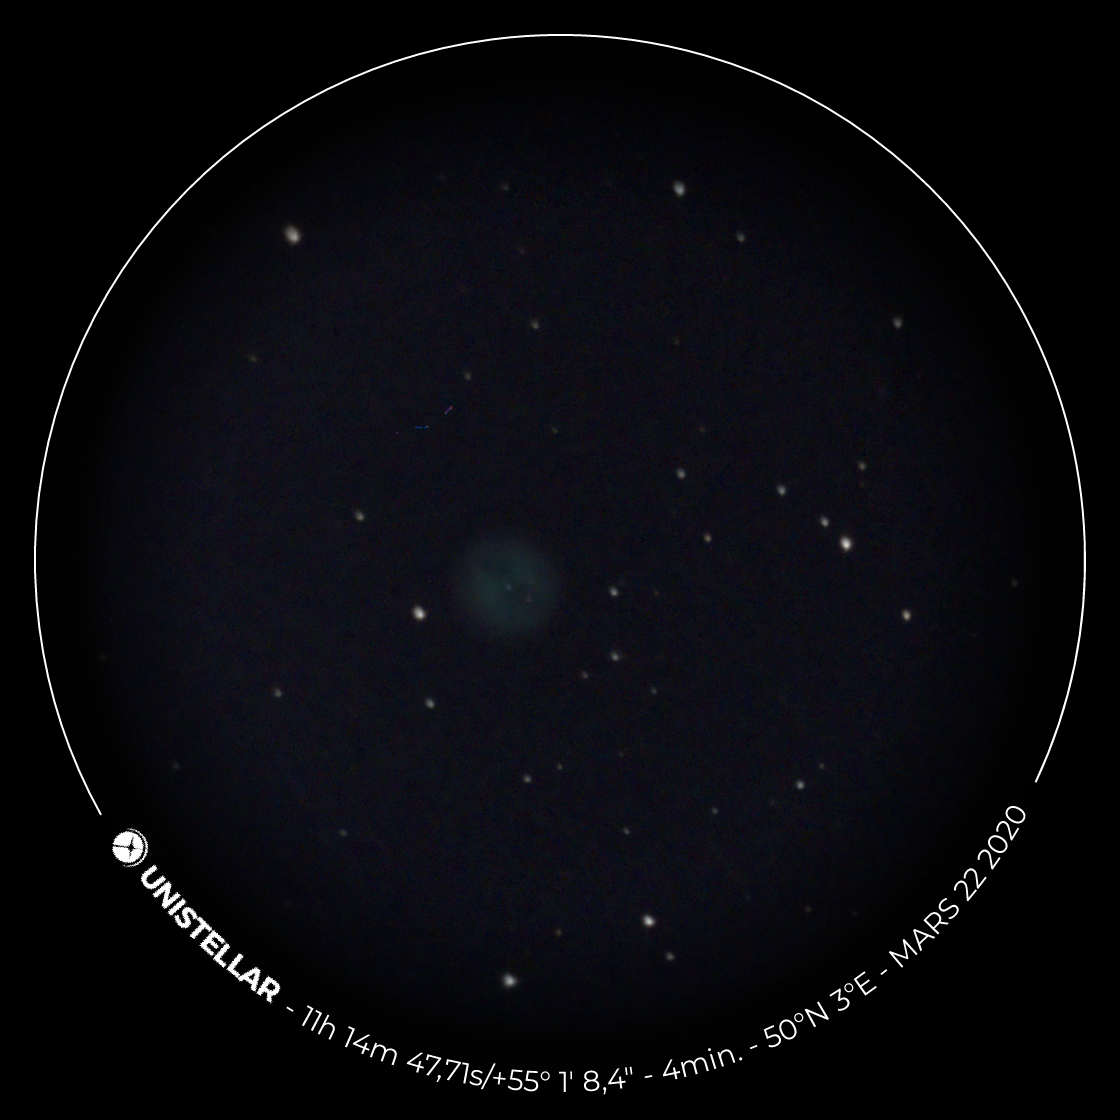 eVscope-20200322-201510.png